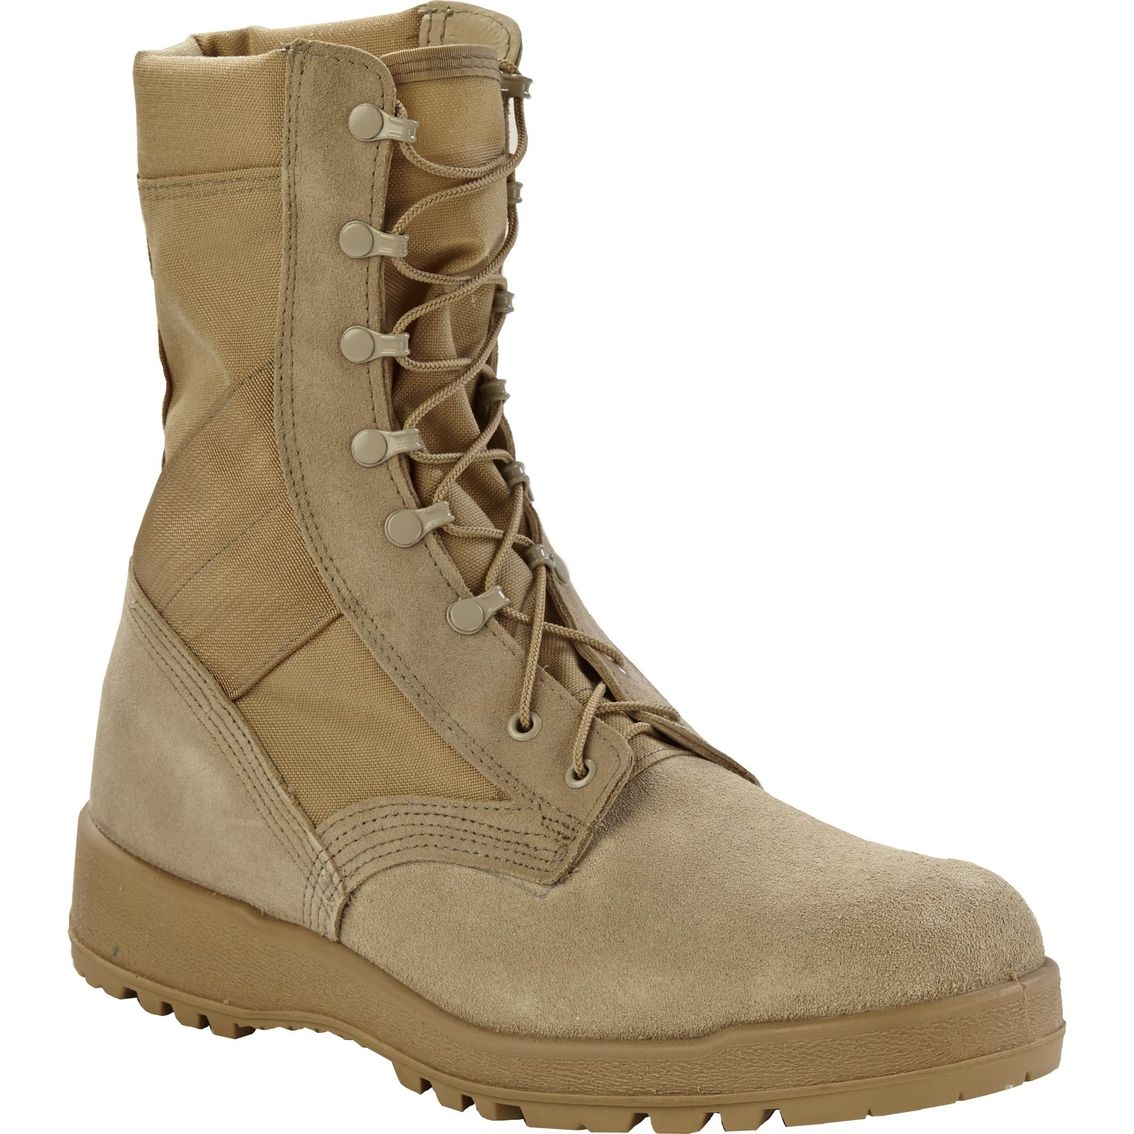 Find great deals on eBay for tan combat boots. Shop with confidence.